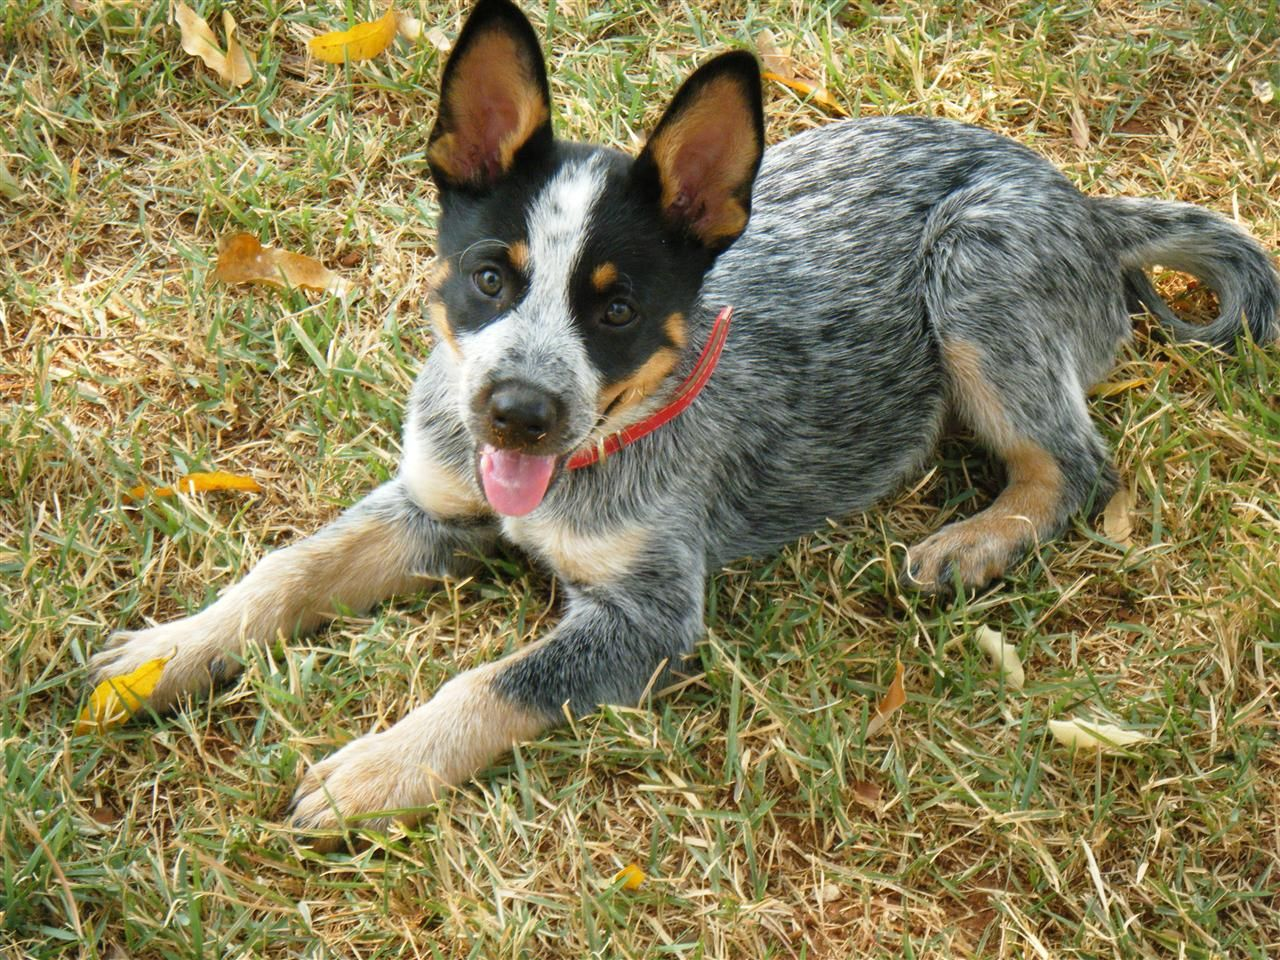 The Awkward Teenage Years Big Ears Big Paws Blue Heeler Puppies Heeler Puppies Cattle Dogs Rule